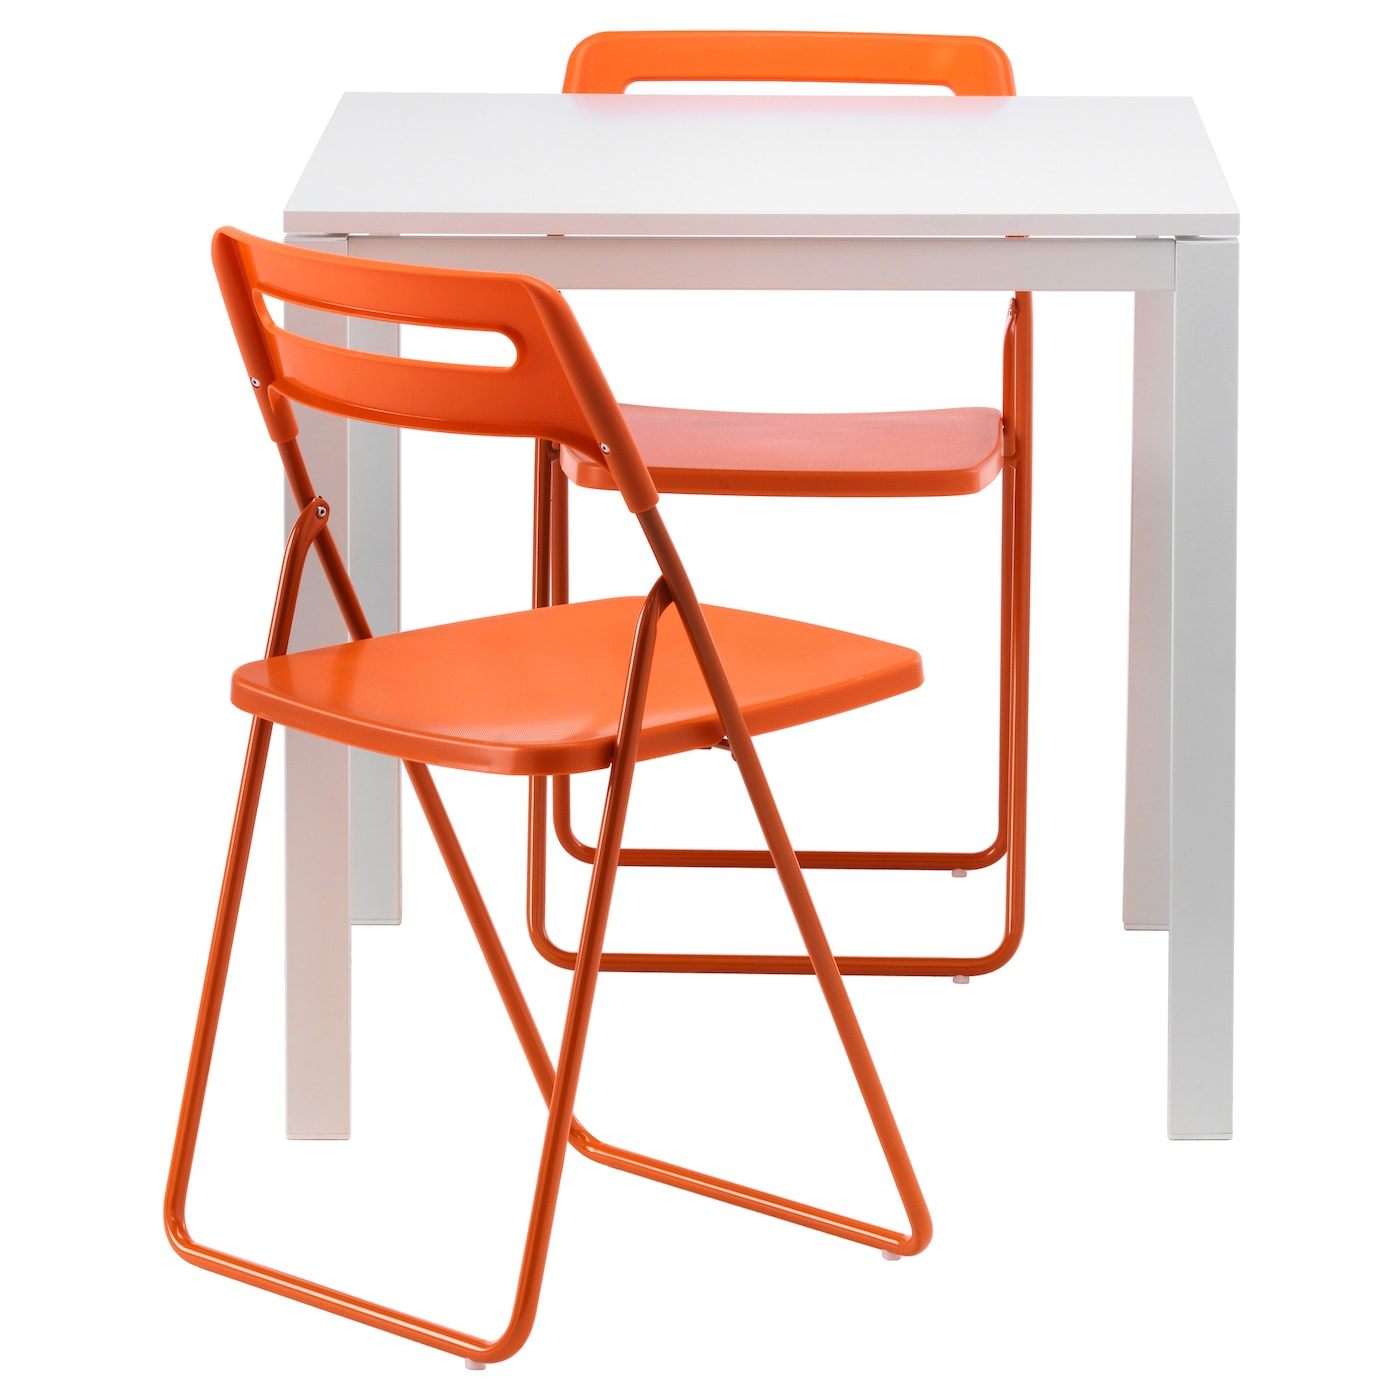 nisse melltorp table 2 chaises pliantes blanc orange 75 cm ikea. Black Bedroom Furniture Sets. Home Design Ideas